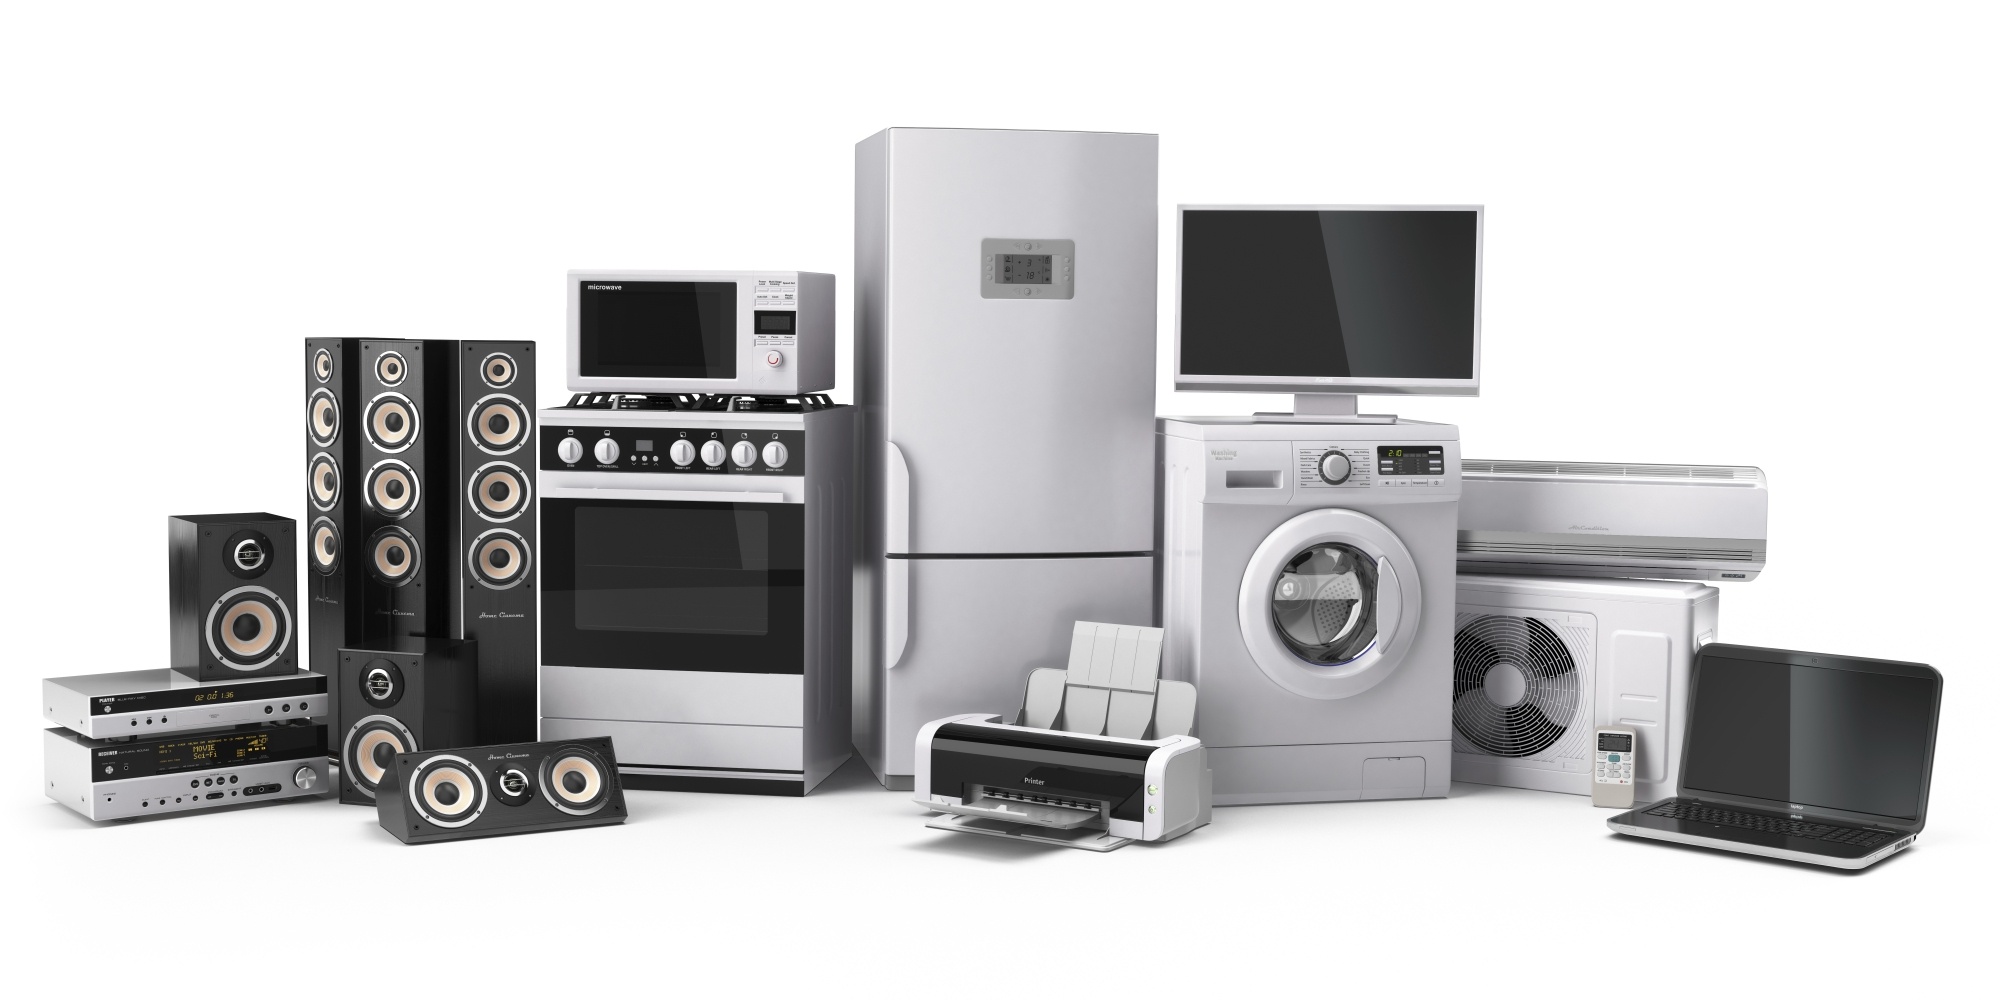 Modern Home Gadgets Appliance Removal And Disposal